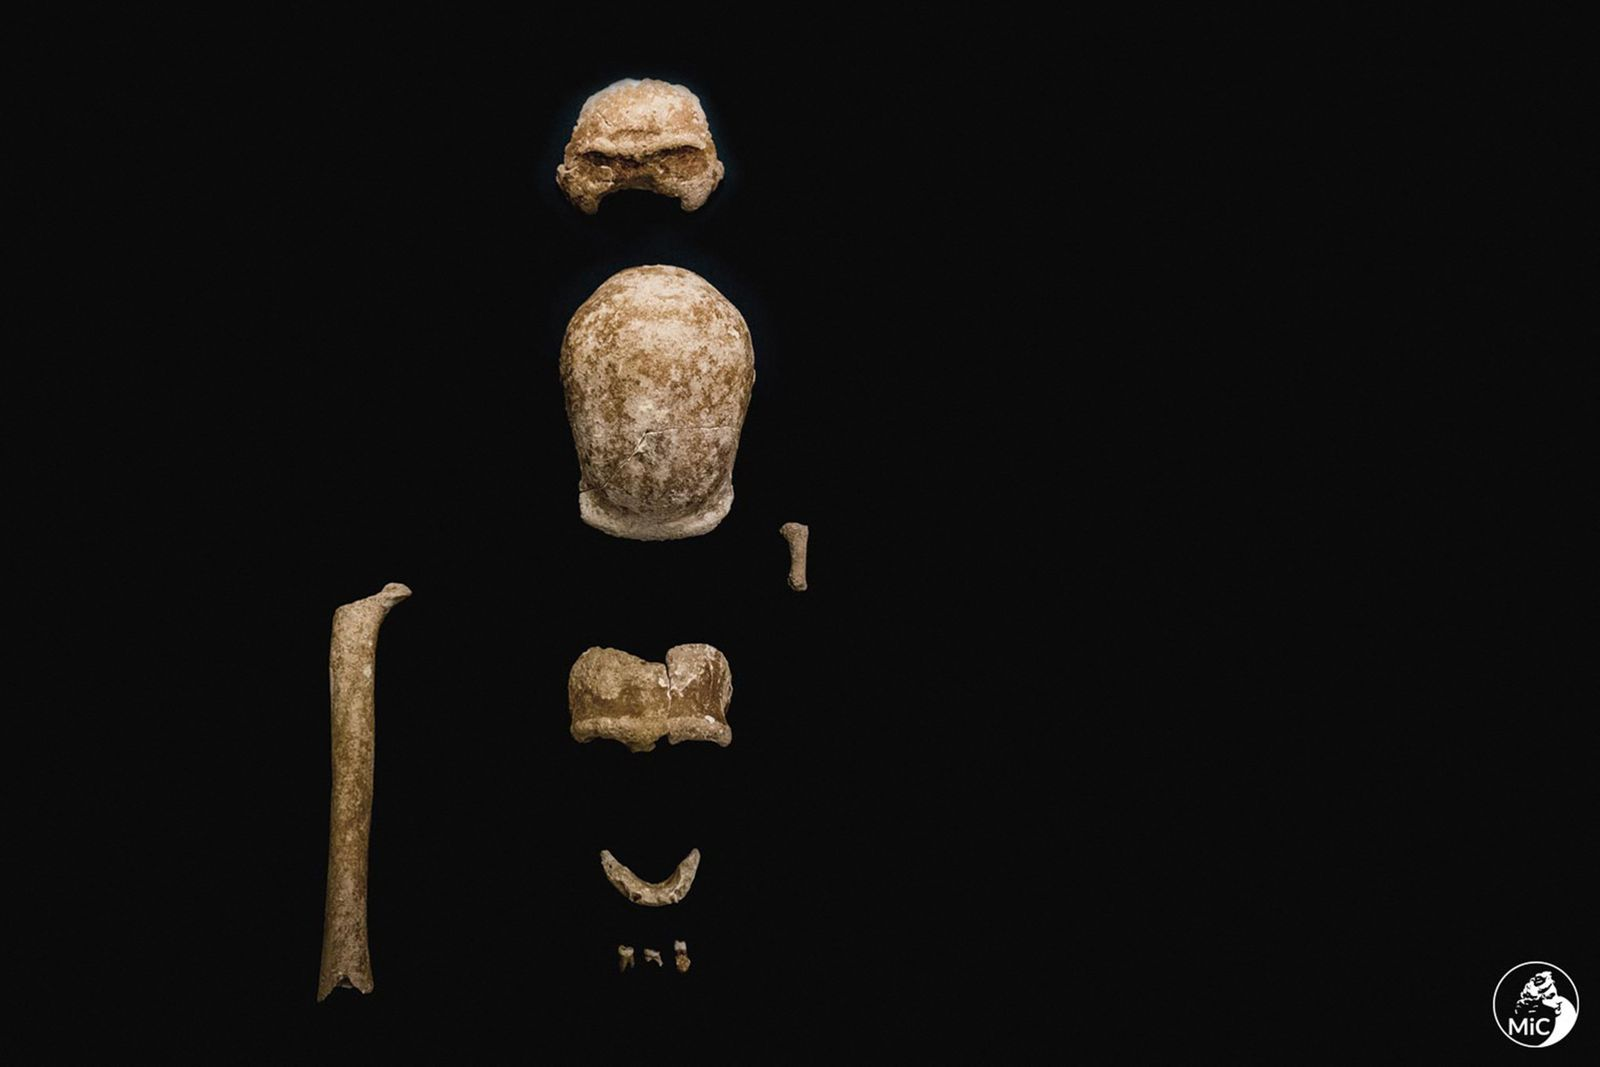 TOPSHOT-ITALY-ARCHAEOLOGY